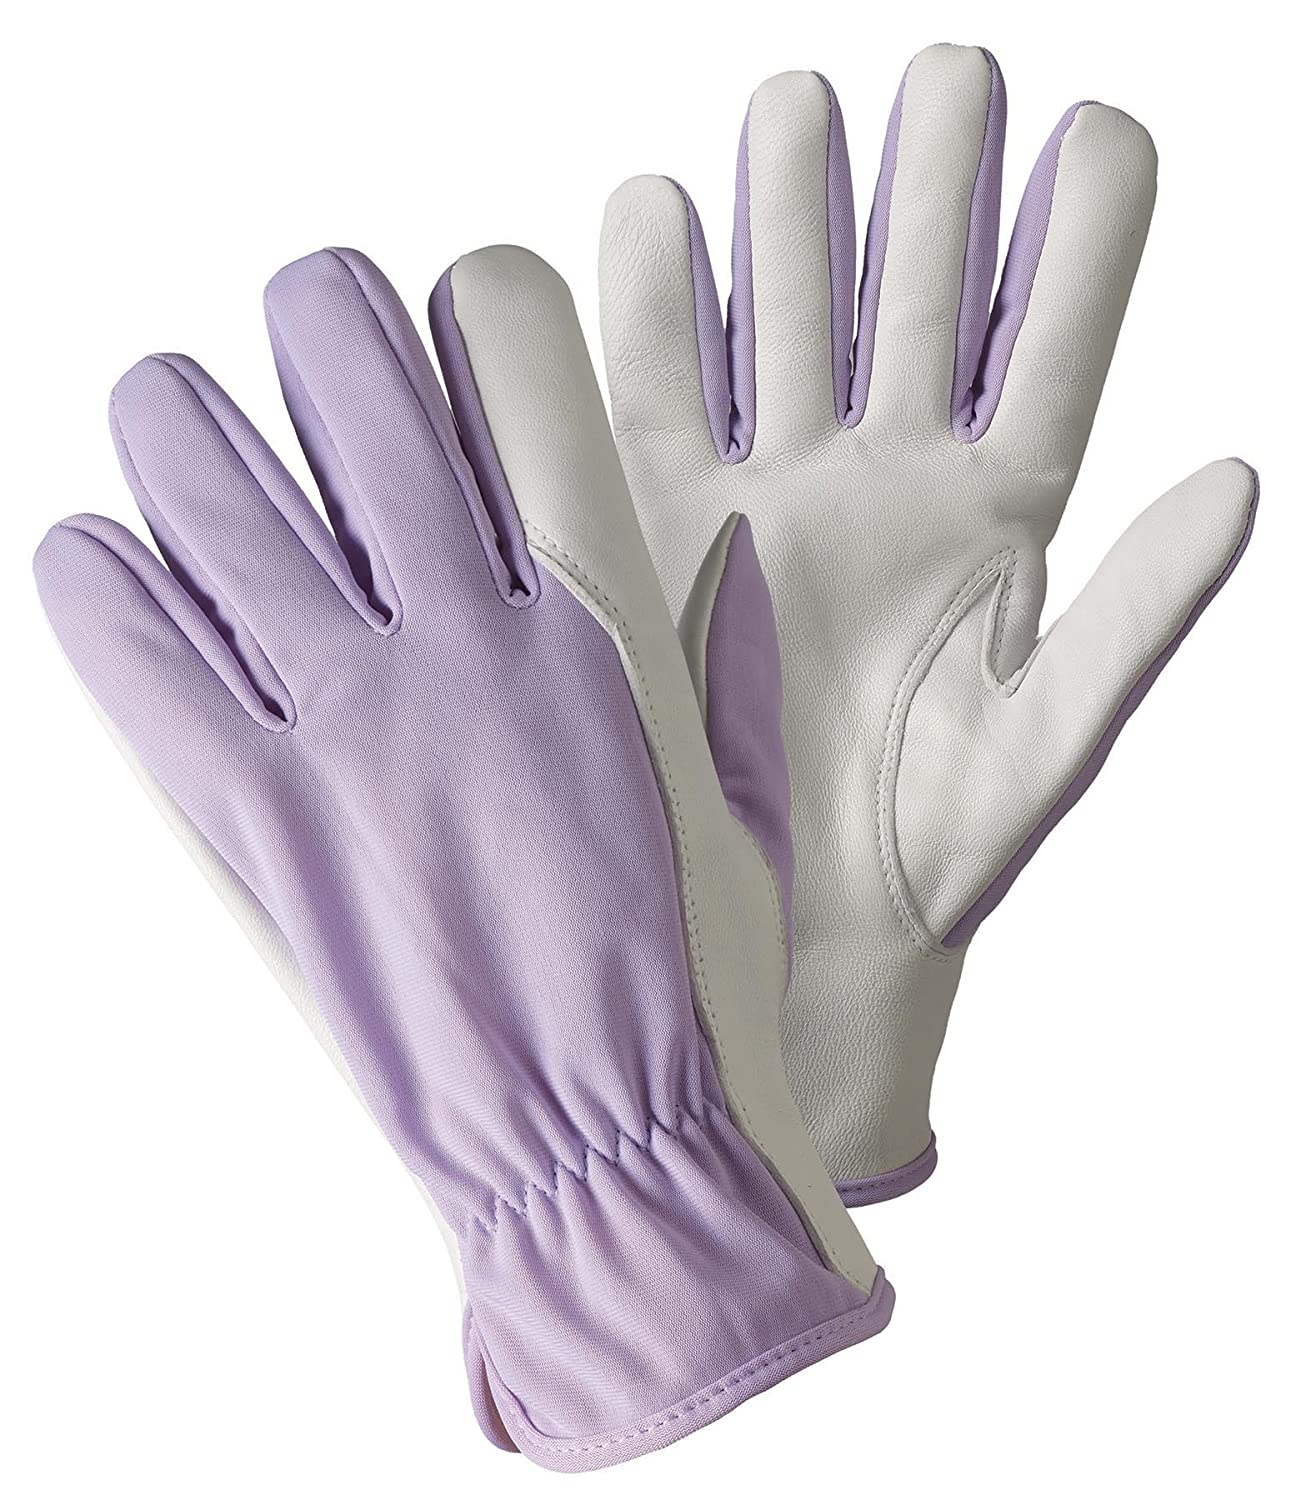 Briers Super Soft & Strong Leather Gloves, Lavender, Medium Briers Ltd B6980